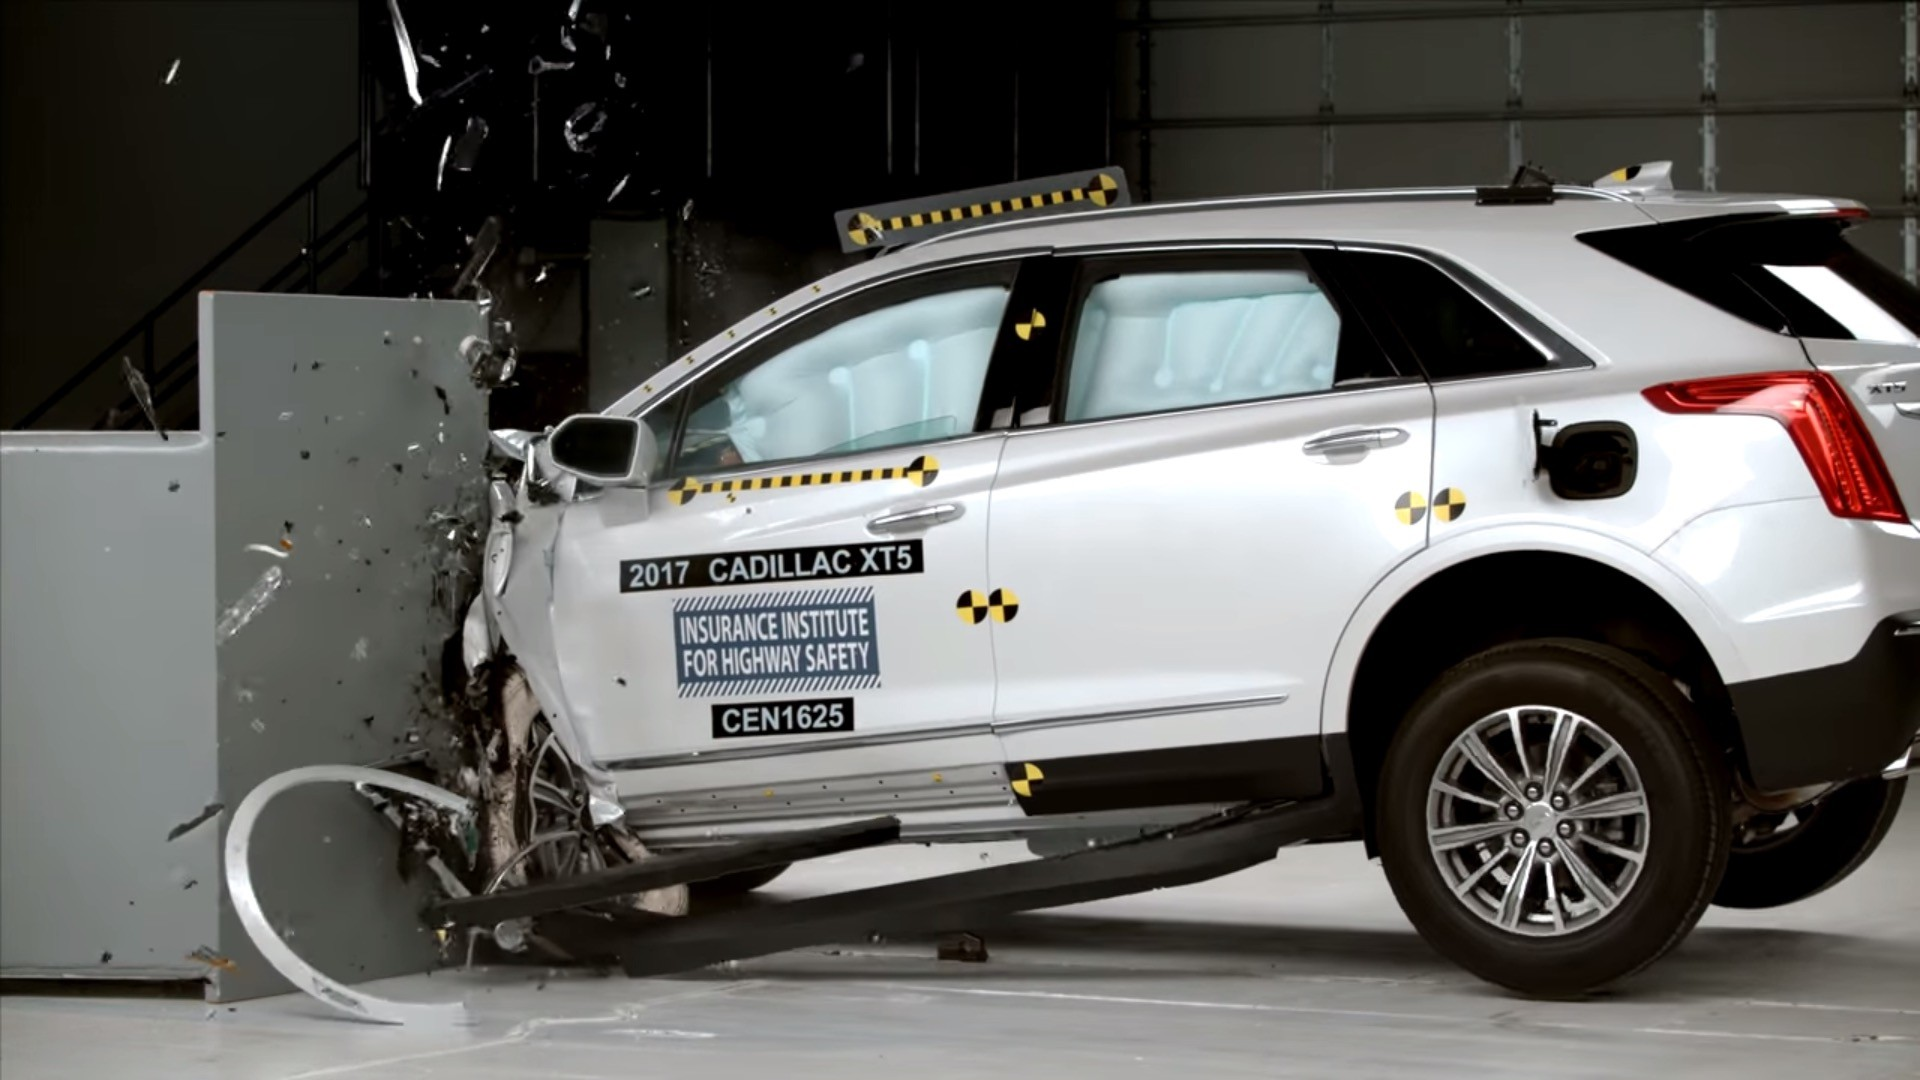 Iihs Crash Tests Cadillac Xt5 Rates It Top Safety Pick